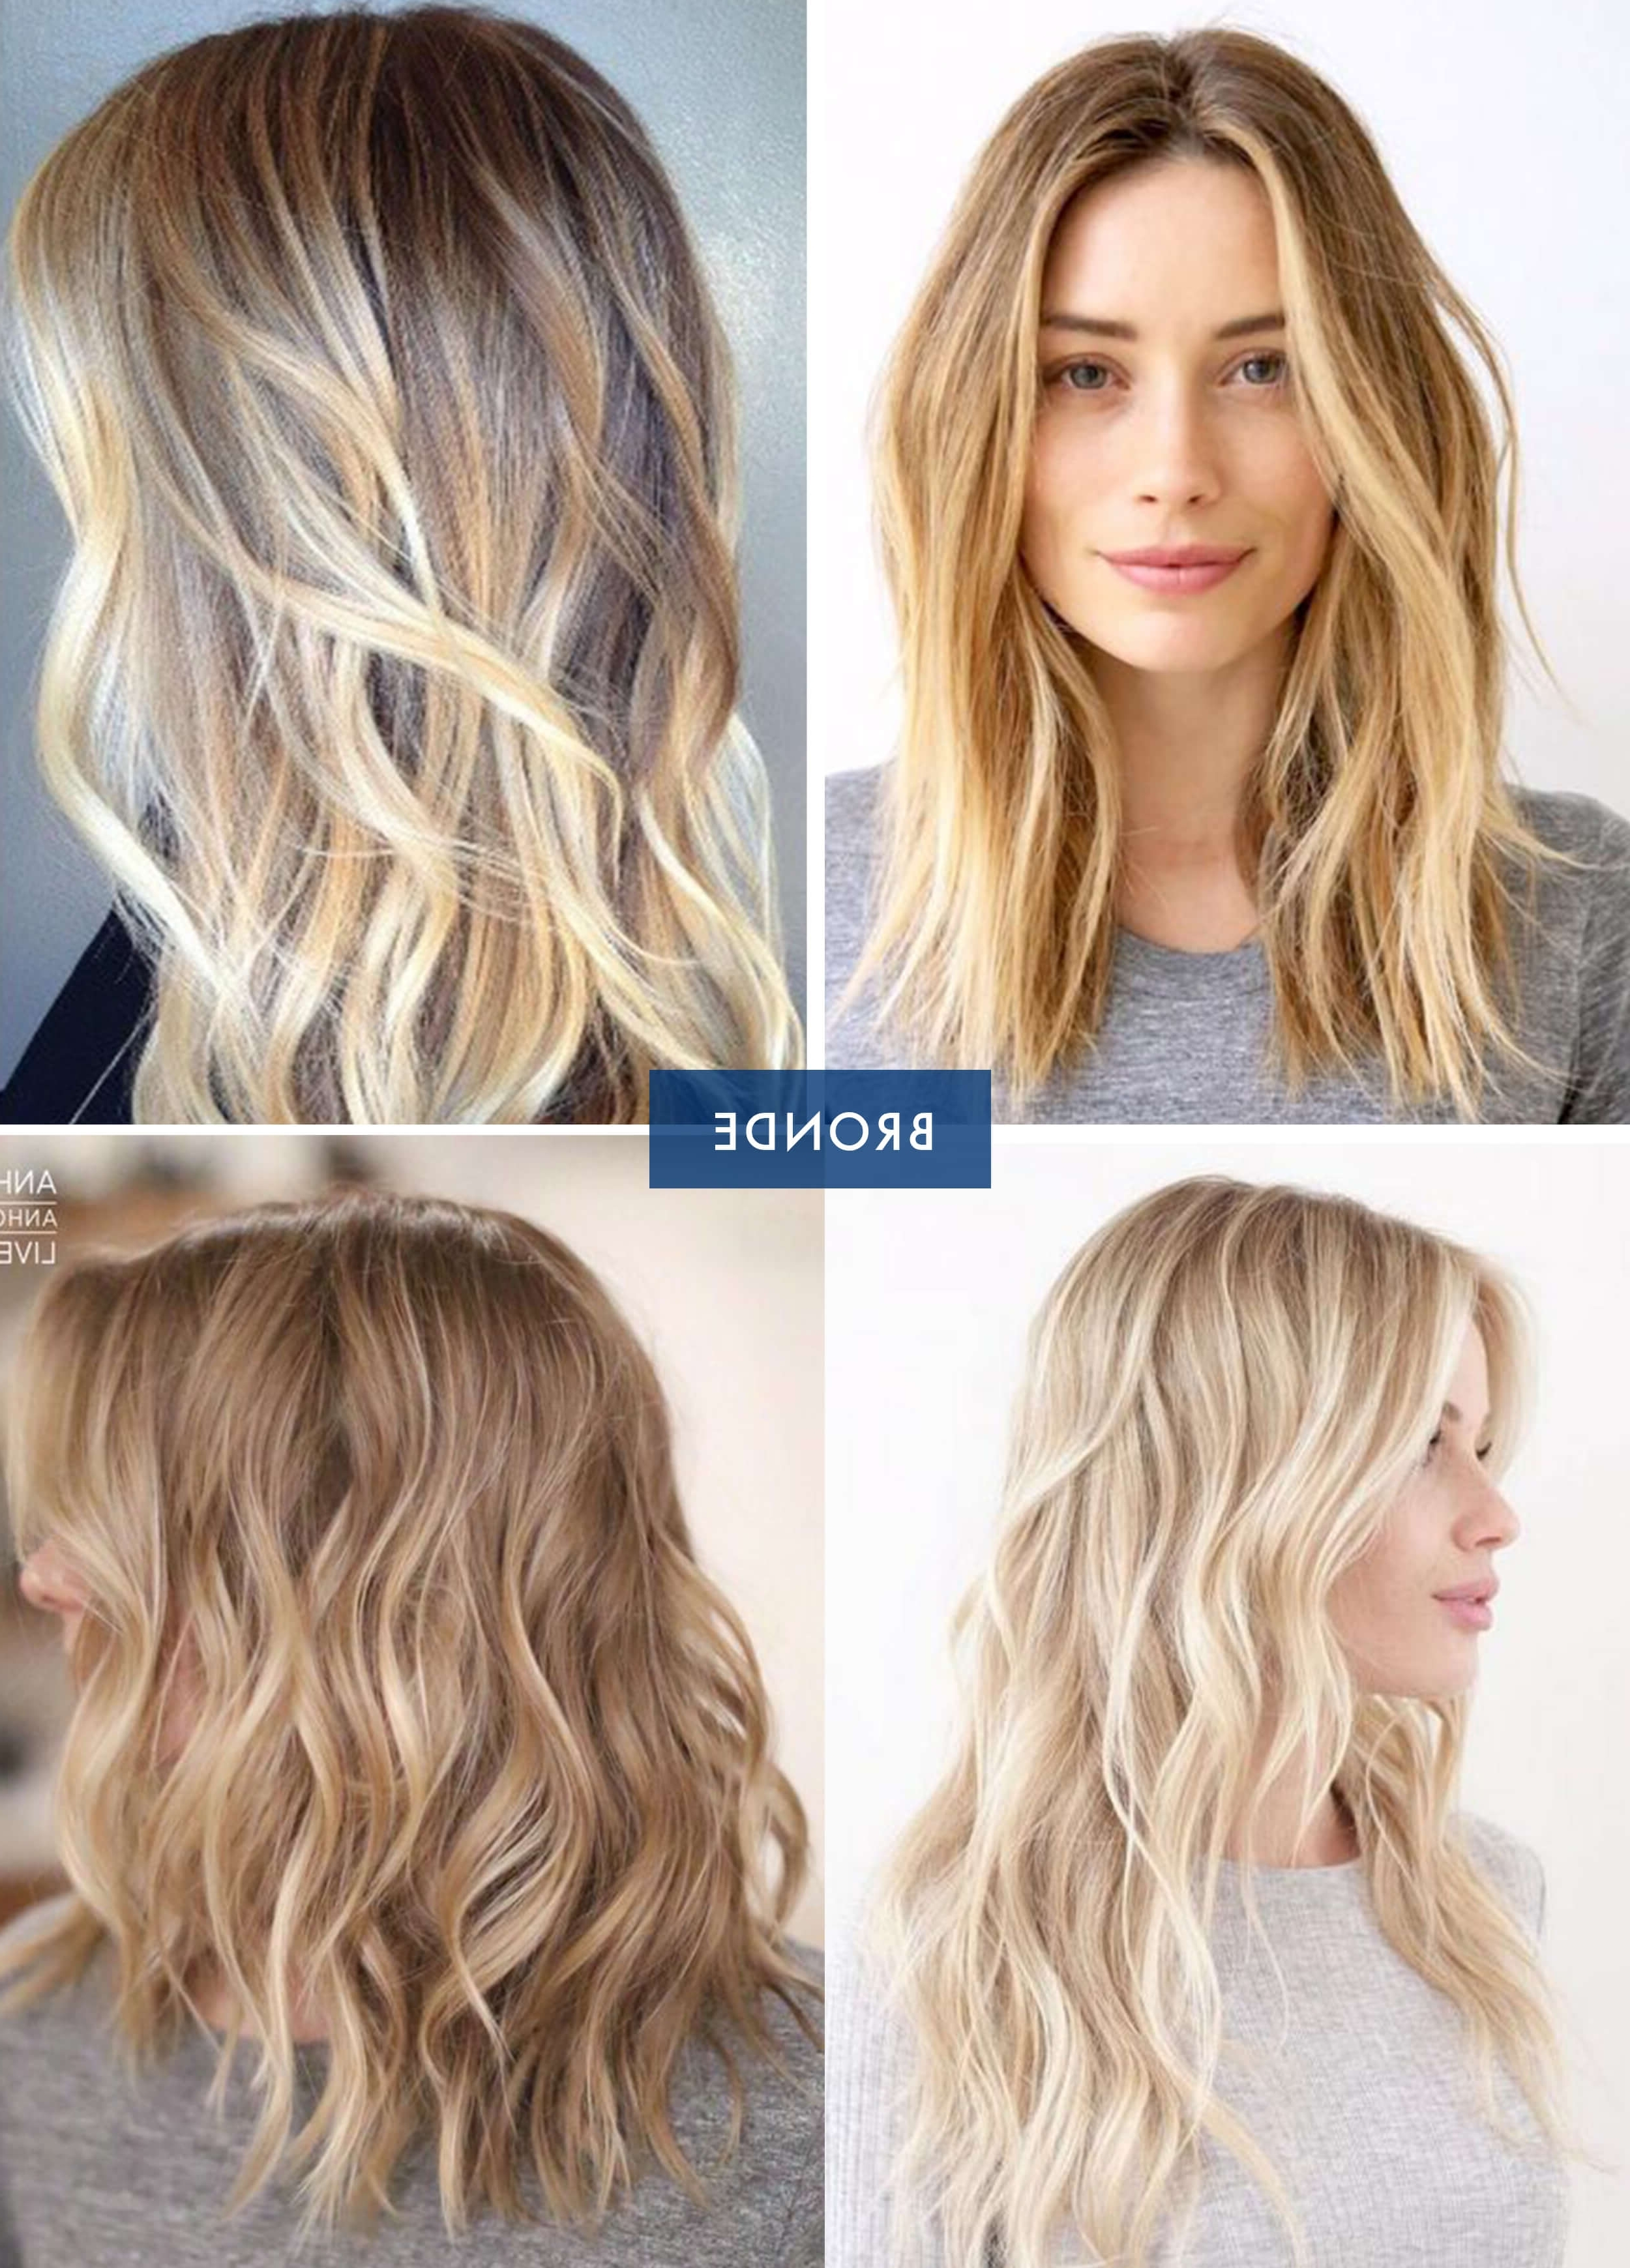 Most Up To Date Bronde Beach Waves Blonde Hairstyles Intended For My New Cut And Color. Help (View 14 of 20)